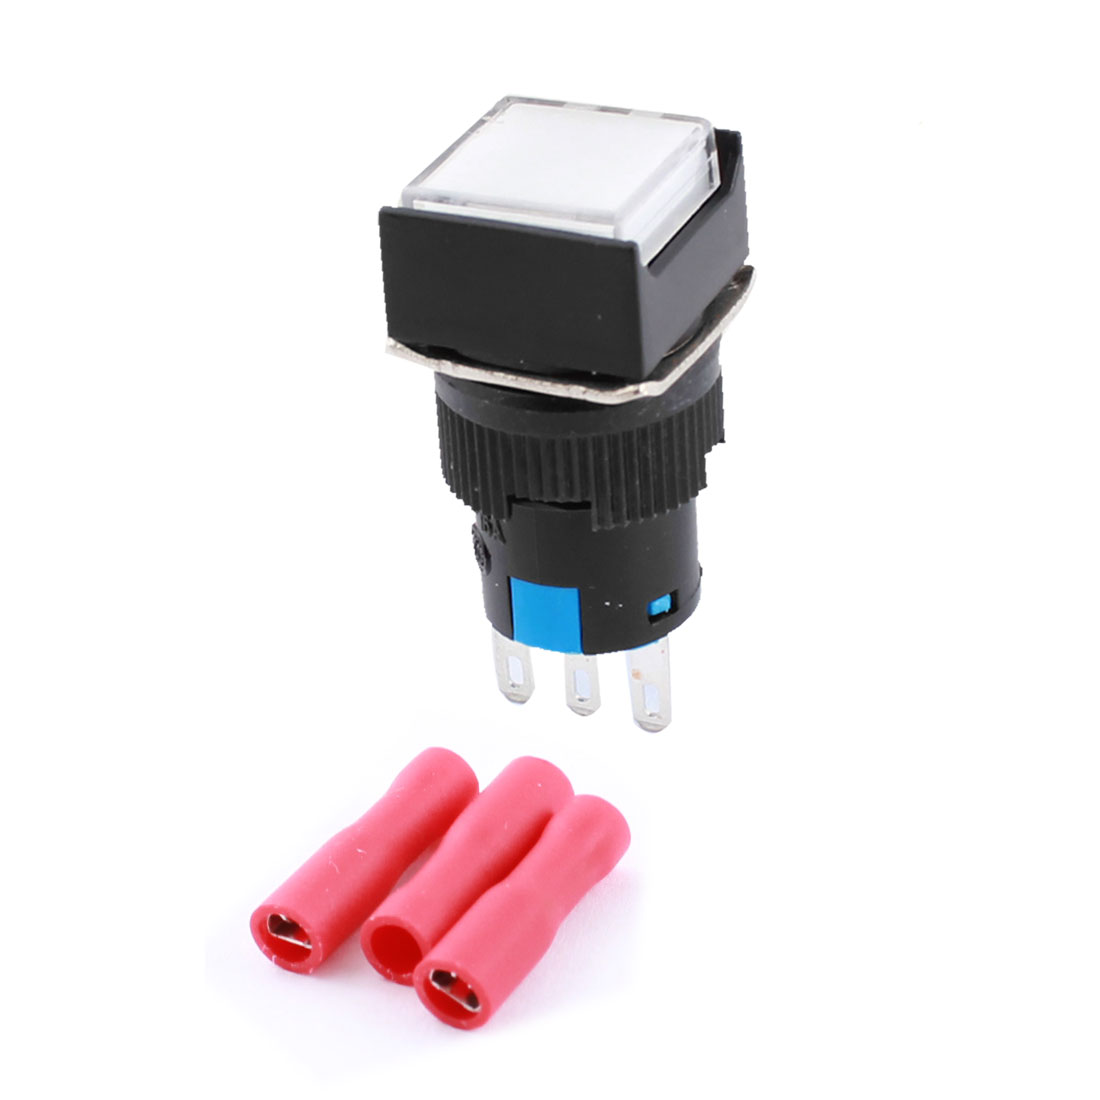 AC 250V 5A 16mm Thread 3Pins Panel Mount SPDT Non Locking Square Head Push Button Switch + 3pcs Female Terminals